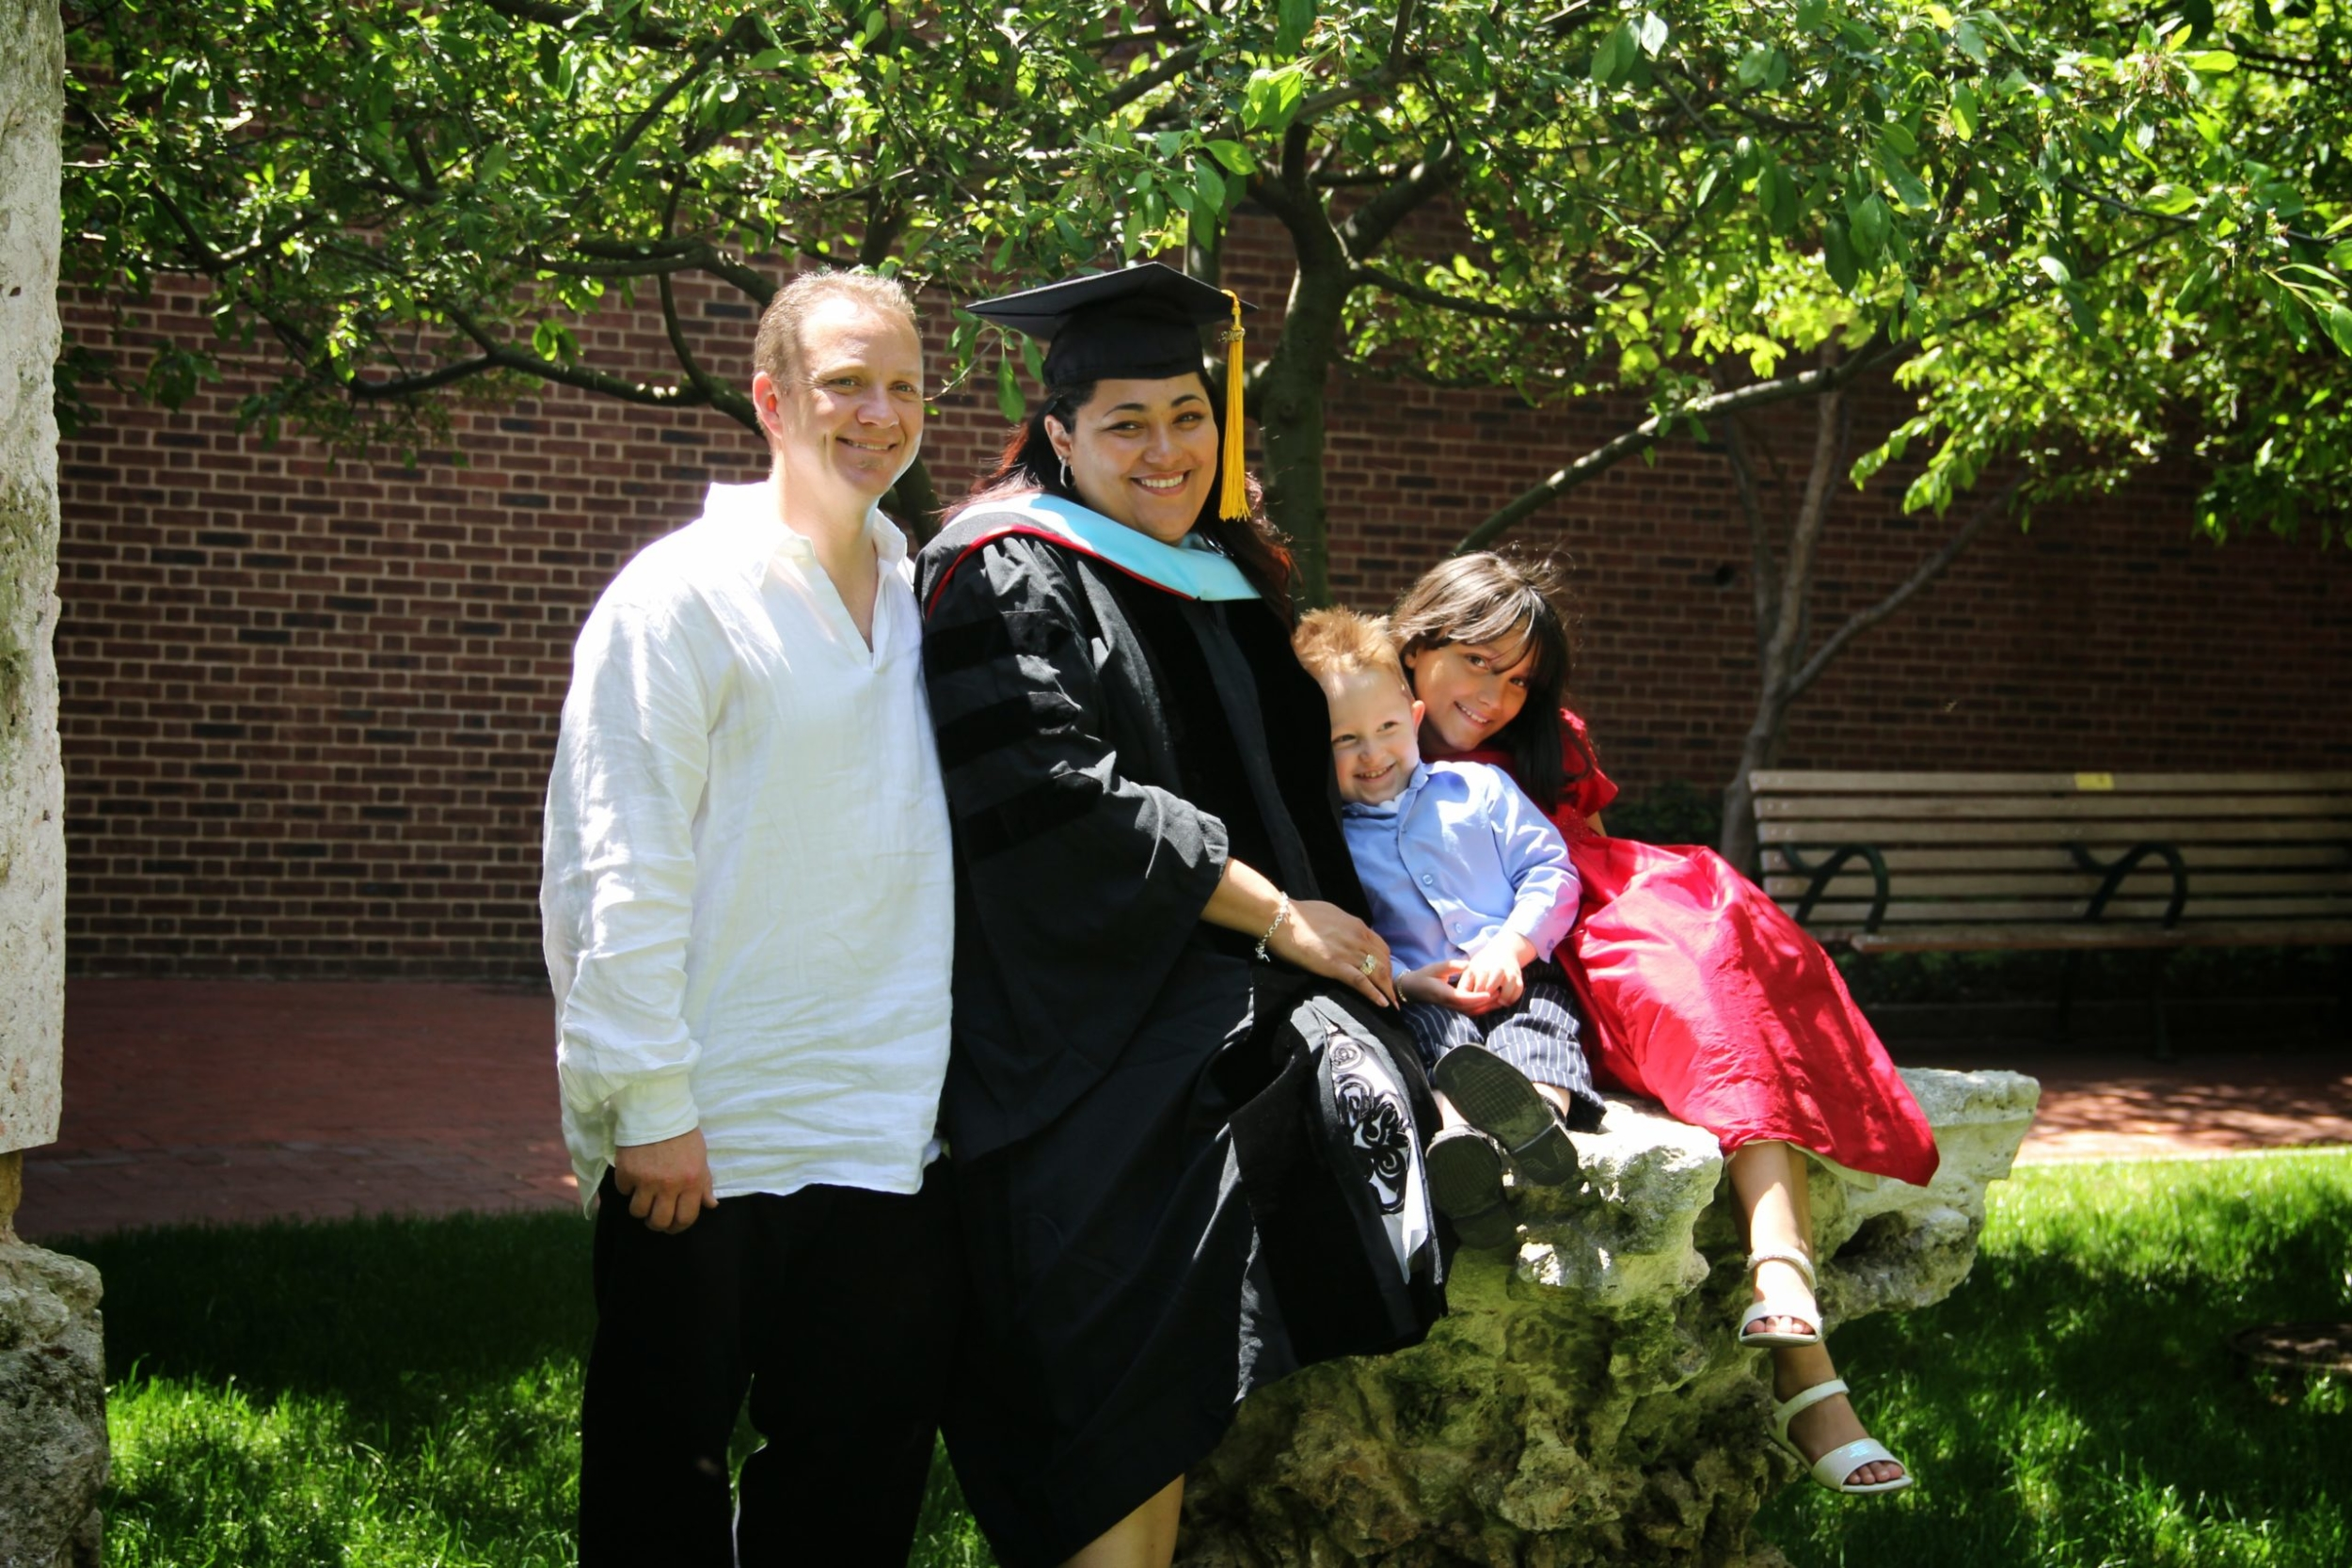 Raquel Esteves-Joyce in a cap and gown and hood poses with her husband and two small children after her graduation ceremony